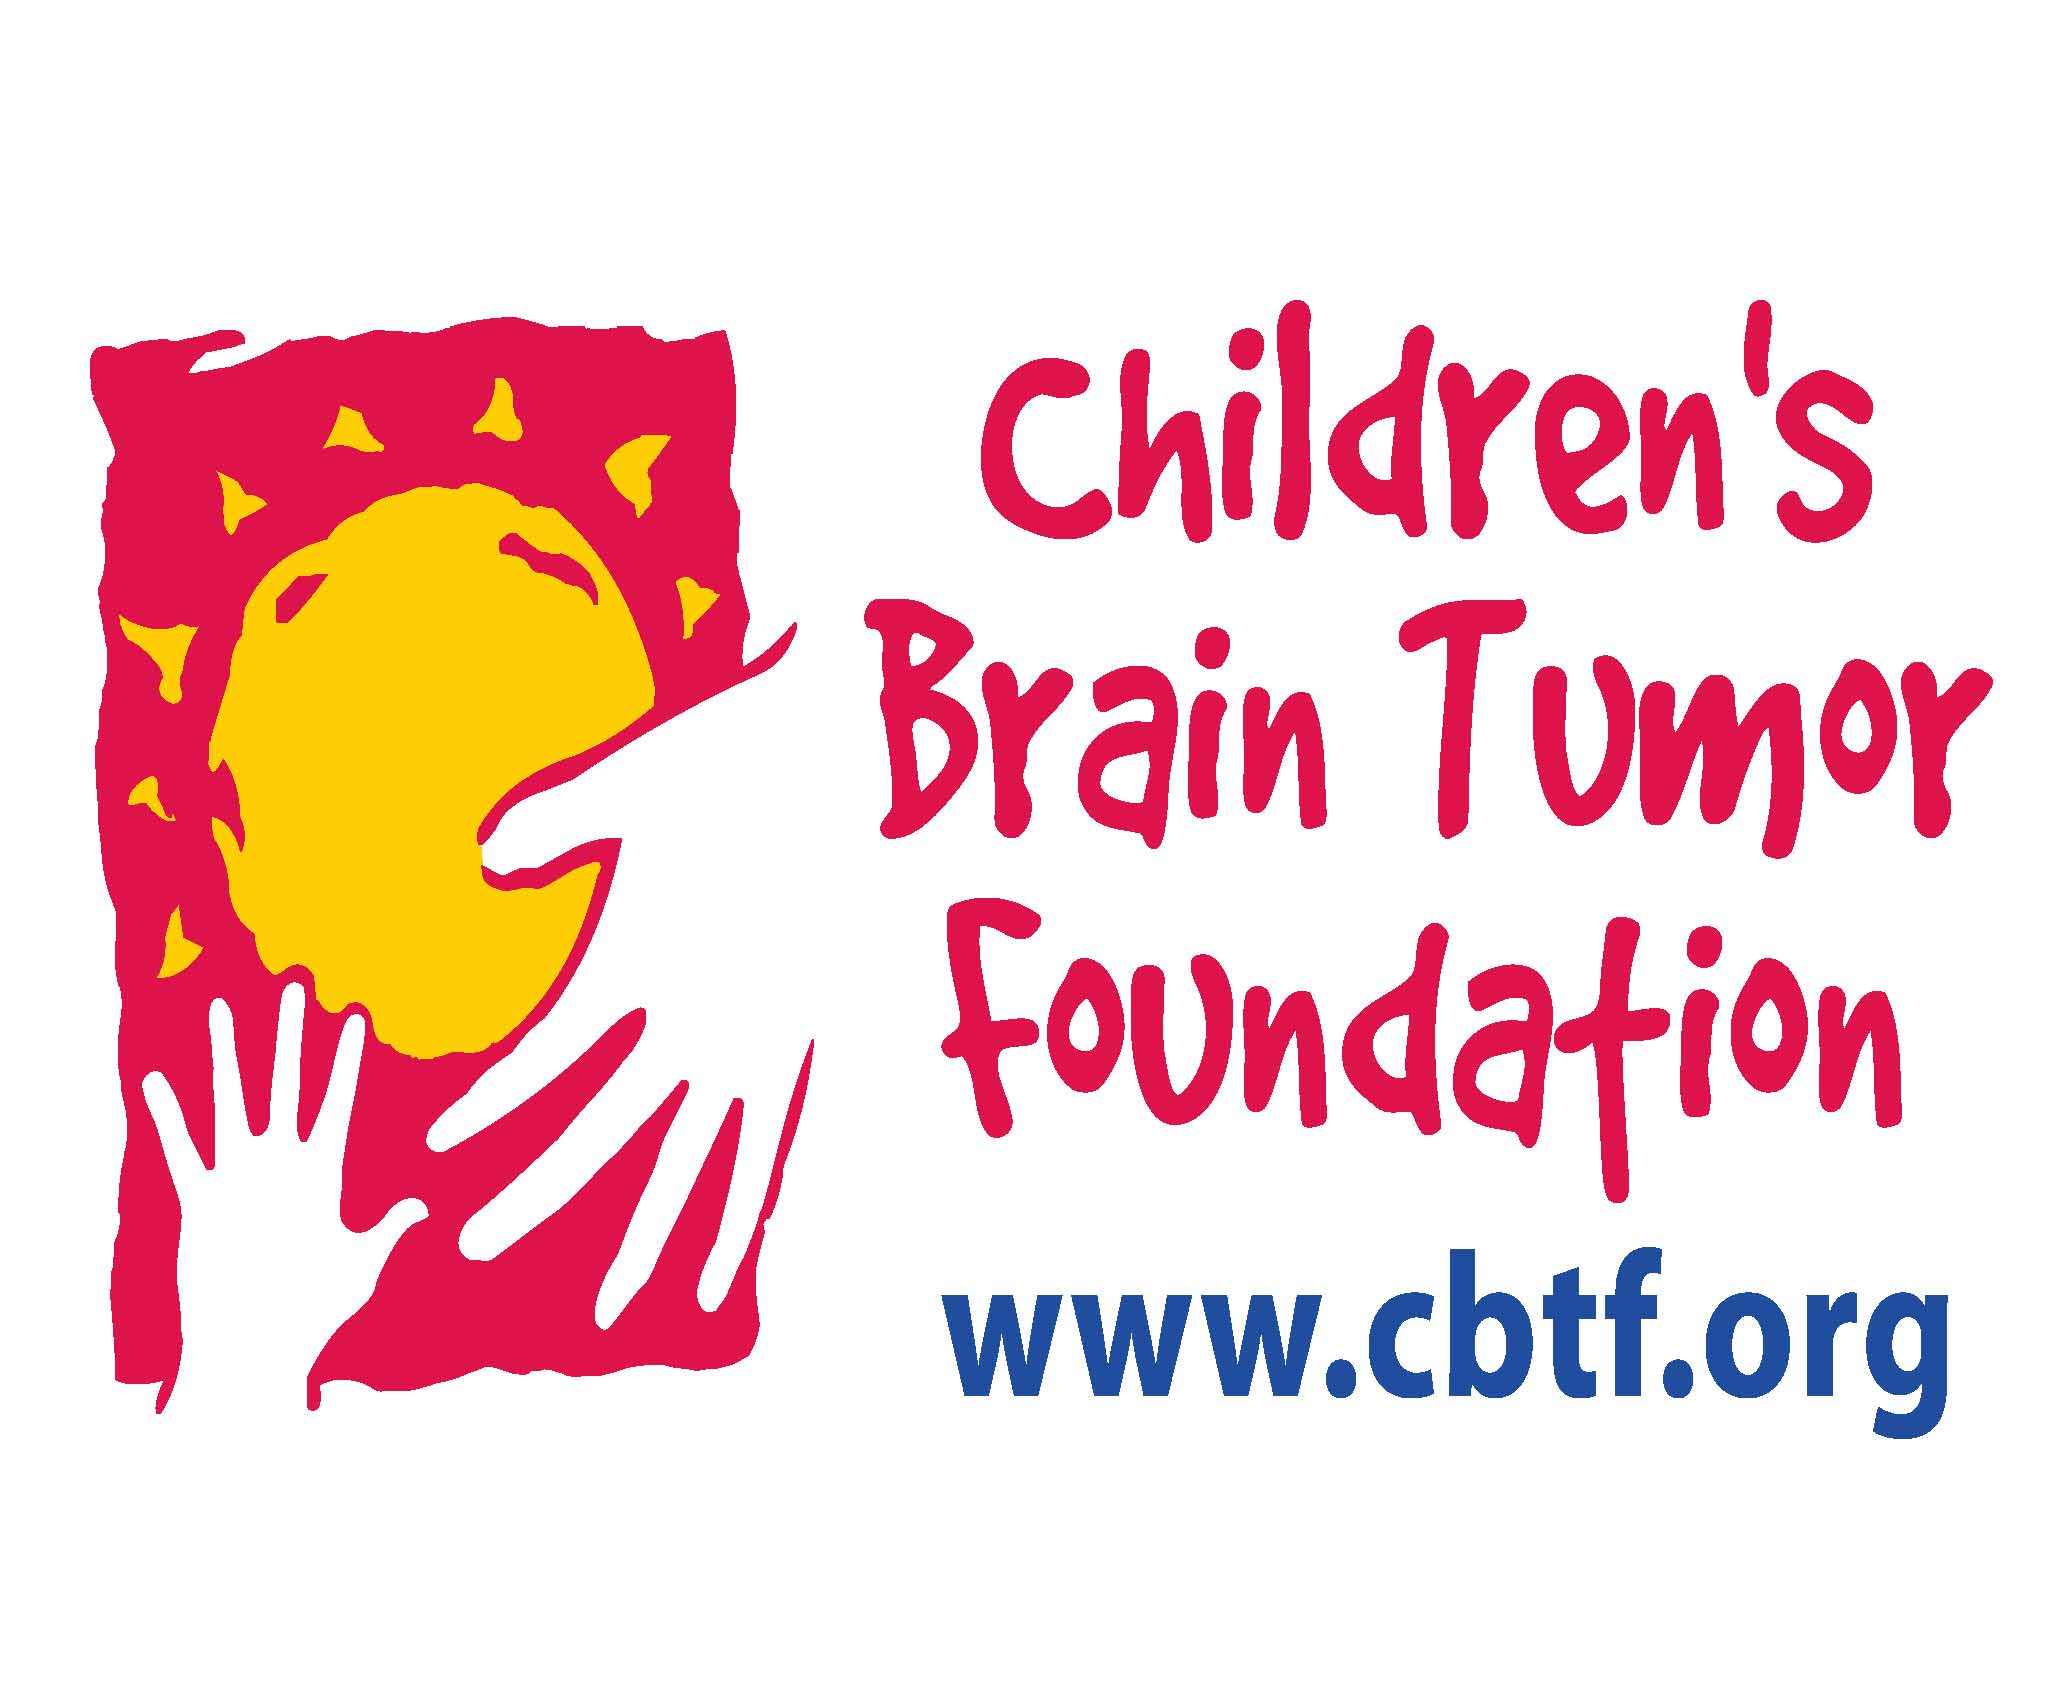 Childrens Brain Tumor Foundation